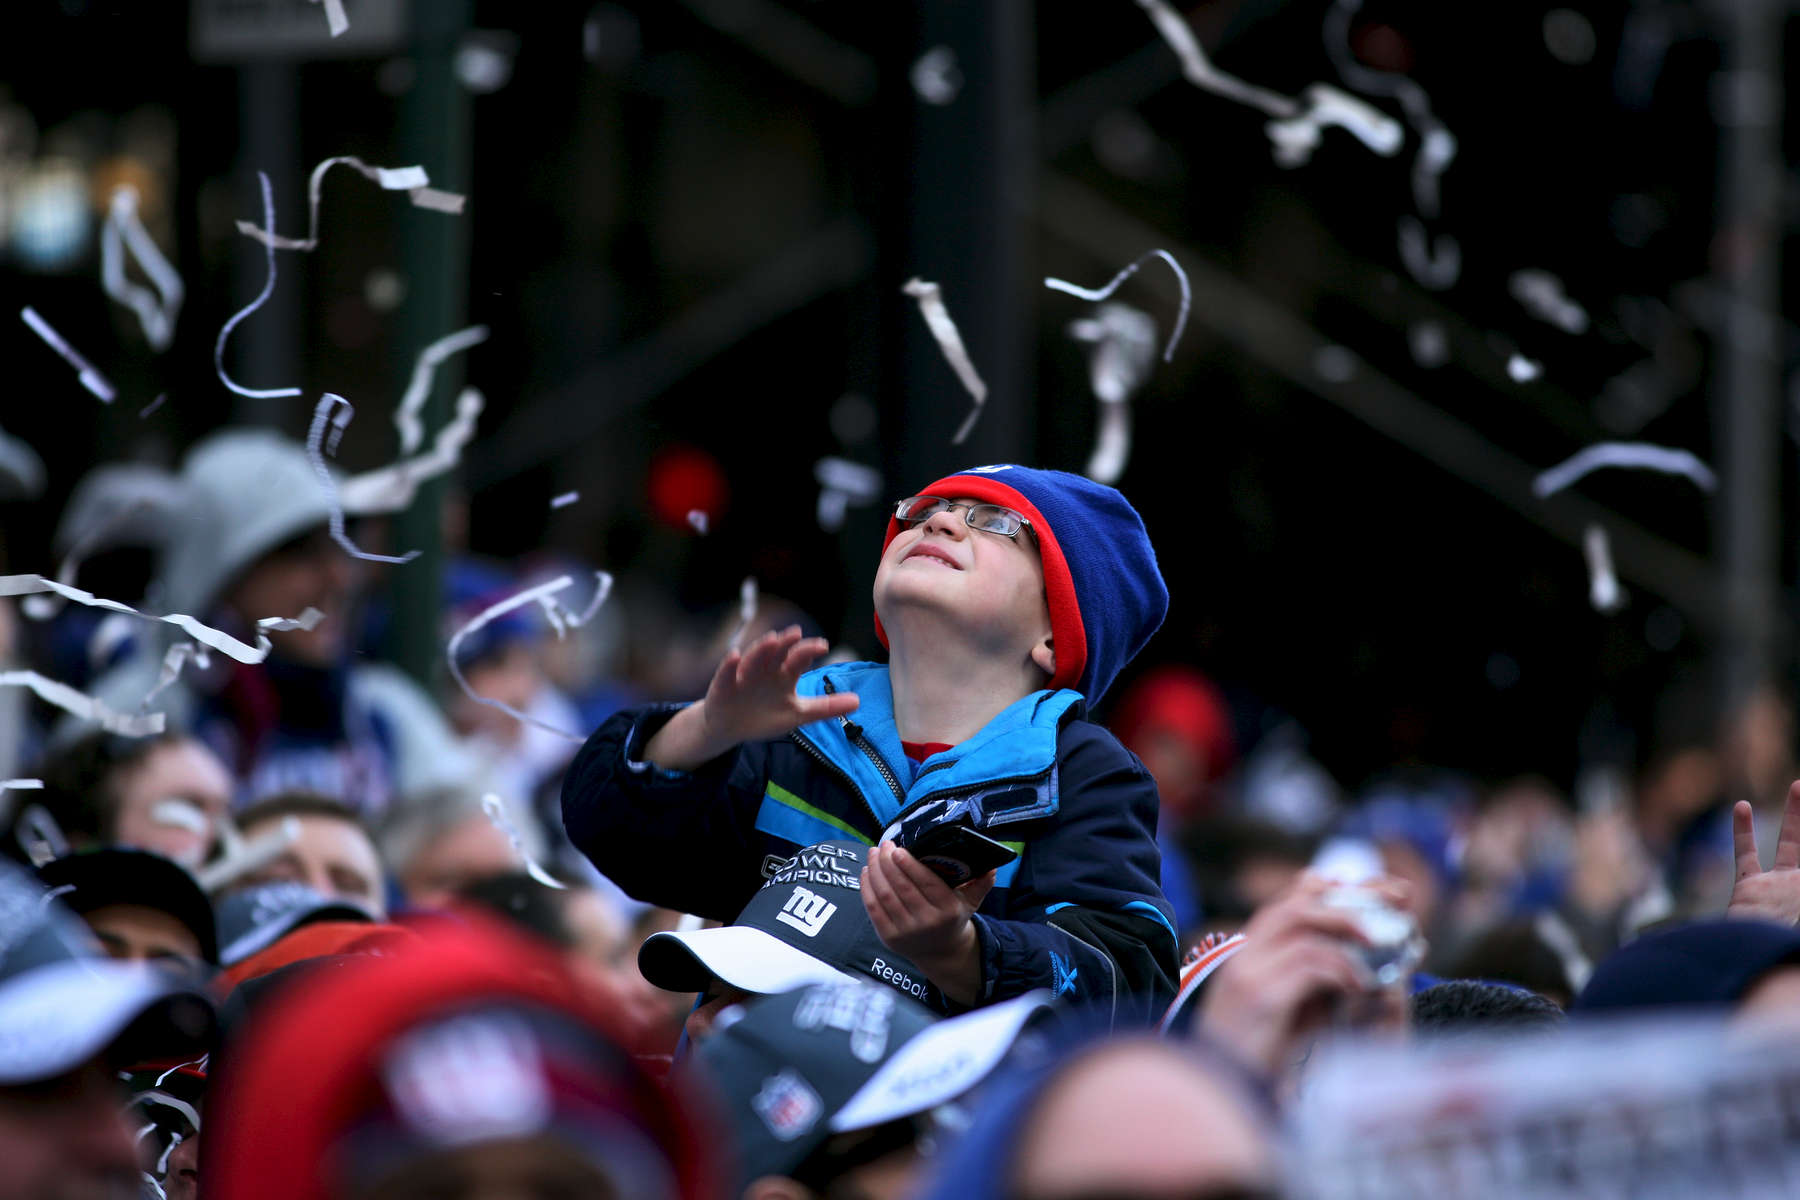 CJ Fortunes, 5, from Old Bridge, NJ, joins the crowds on Broadway in downtown Manhattan for the New York Giants Super Bowl victory parade on Tuesday, February 7, 2012.   (Michael Appleton for The New York Times)  METRO YEAR IN PHOTOS FOR NIKO